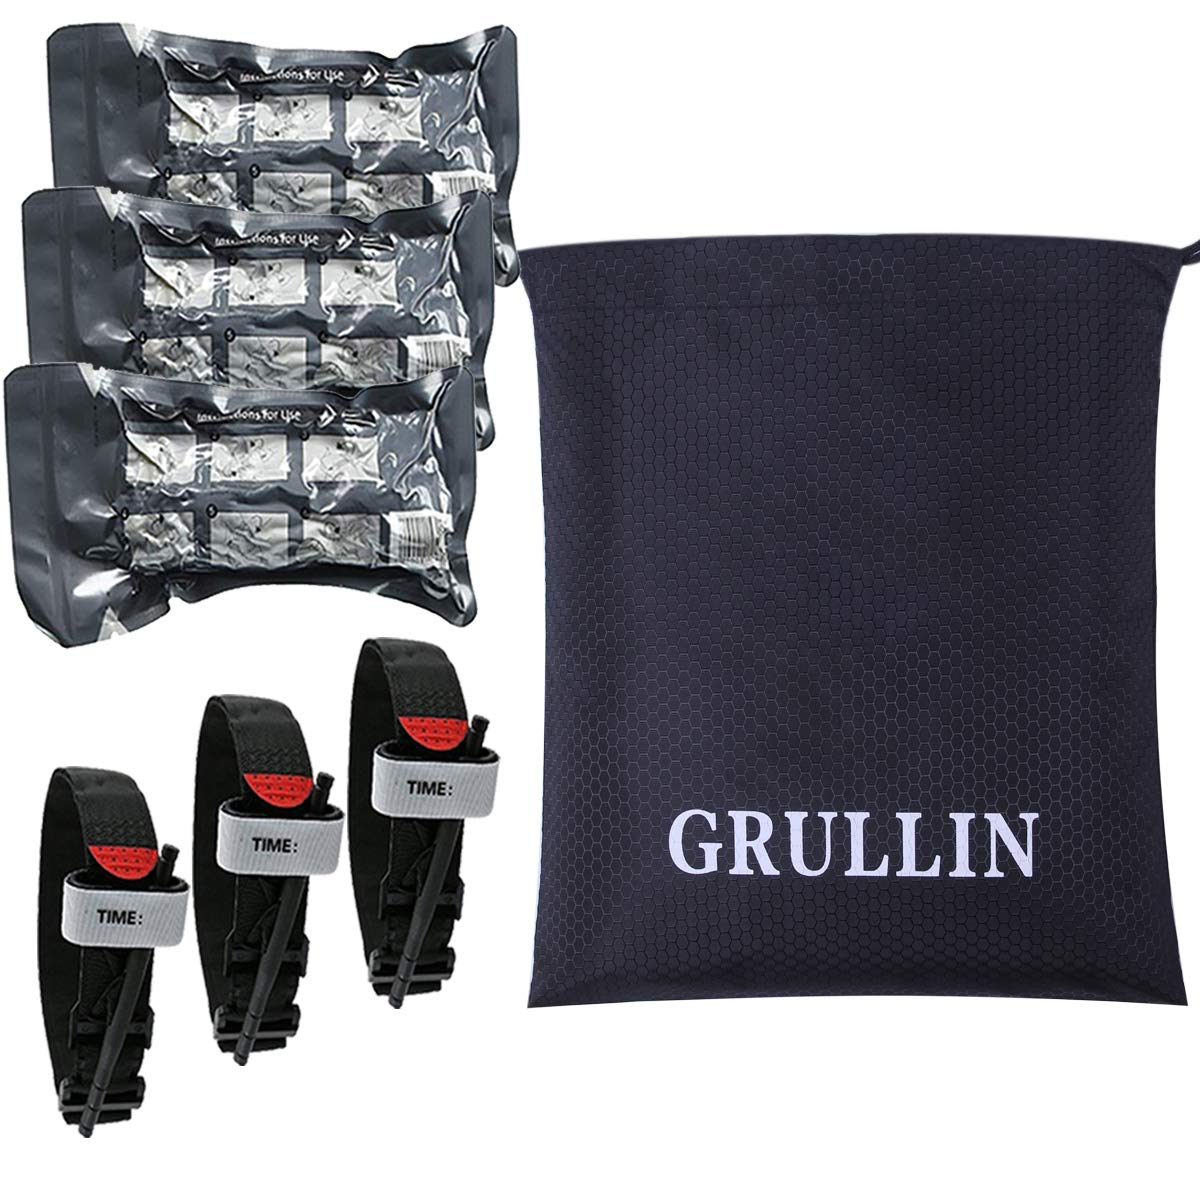 GRULLIN Trauma First aid Accessories Supplementary Kit-3 Pack Outdoor Portable Israeli Bandage+3 Pack Quick Slow Tourniquet with a Bundle Pocket by GRULLIN